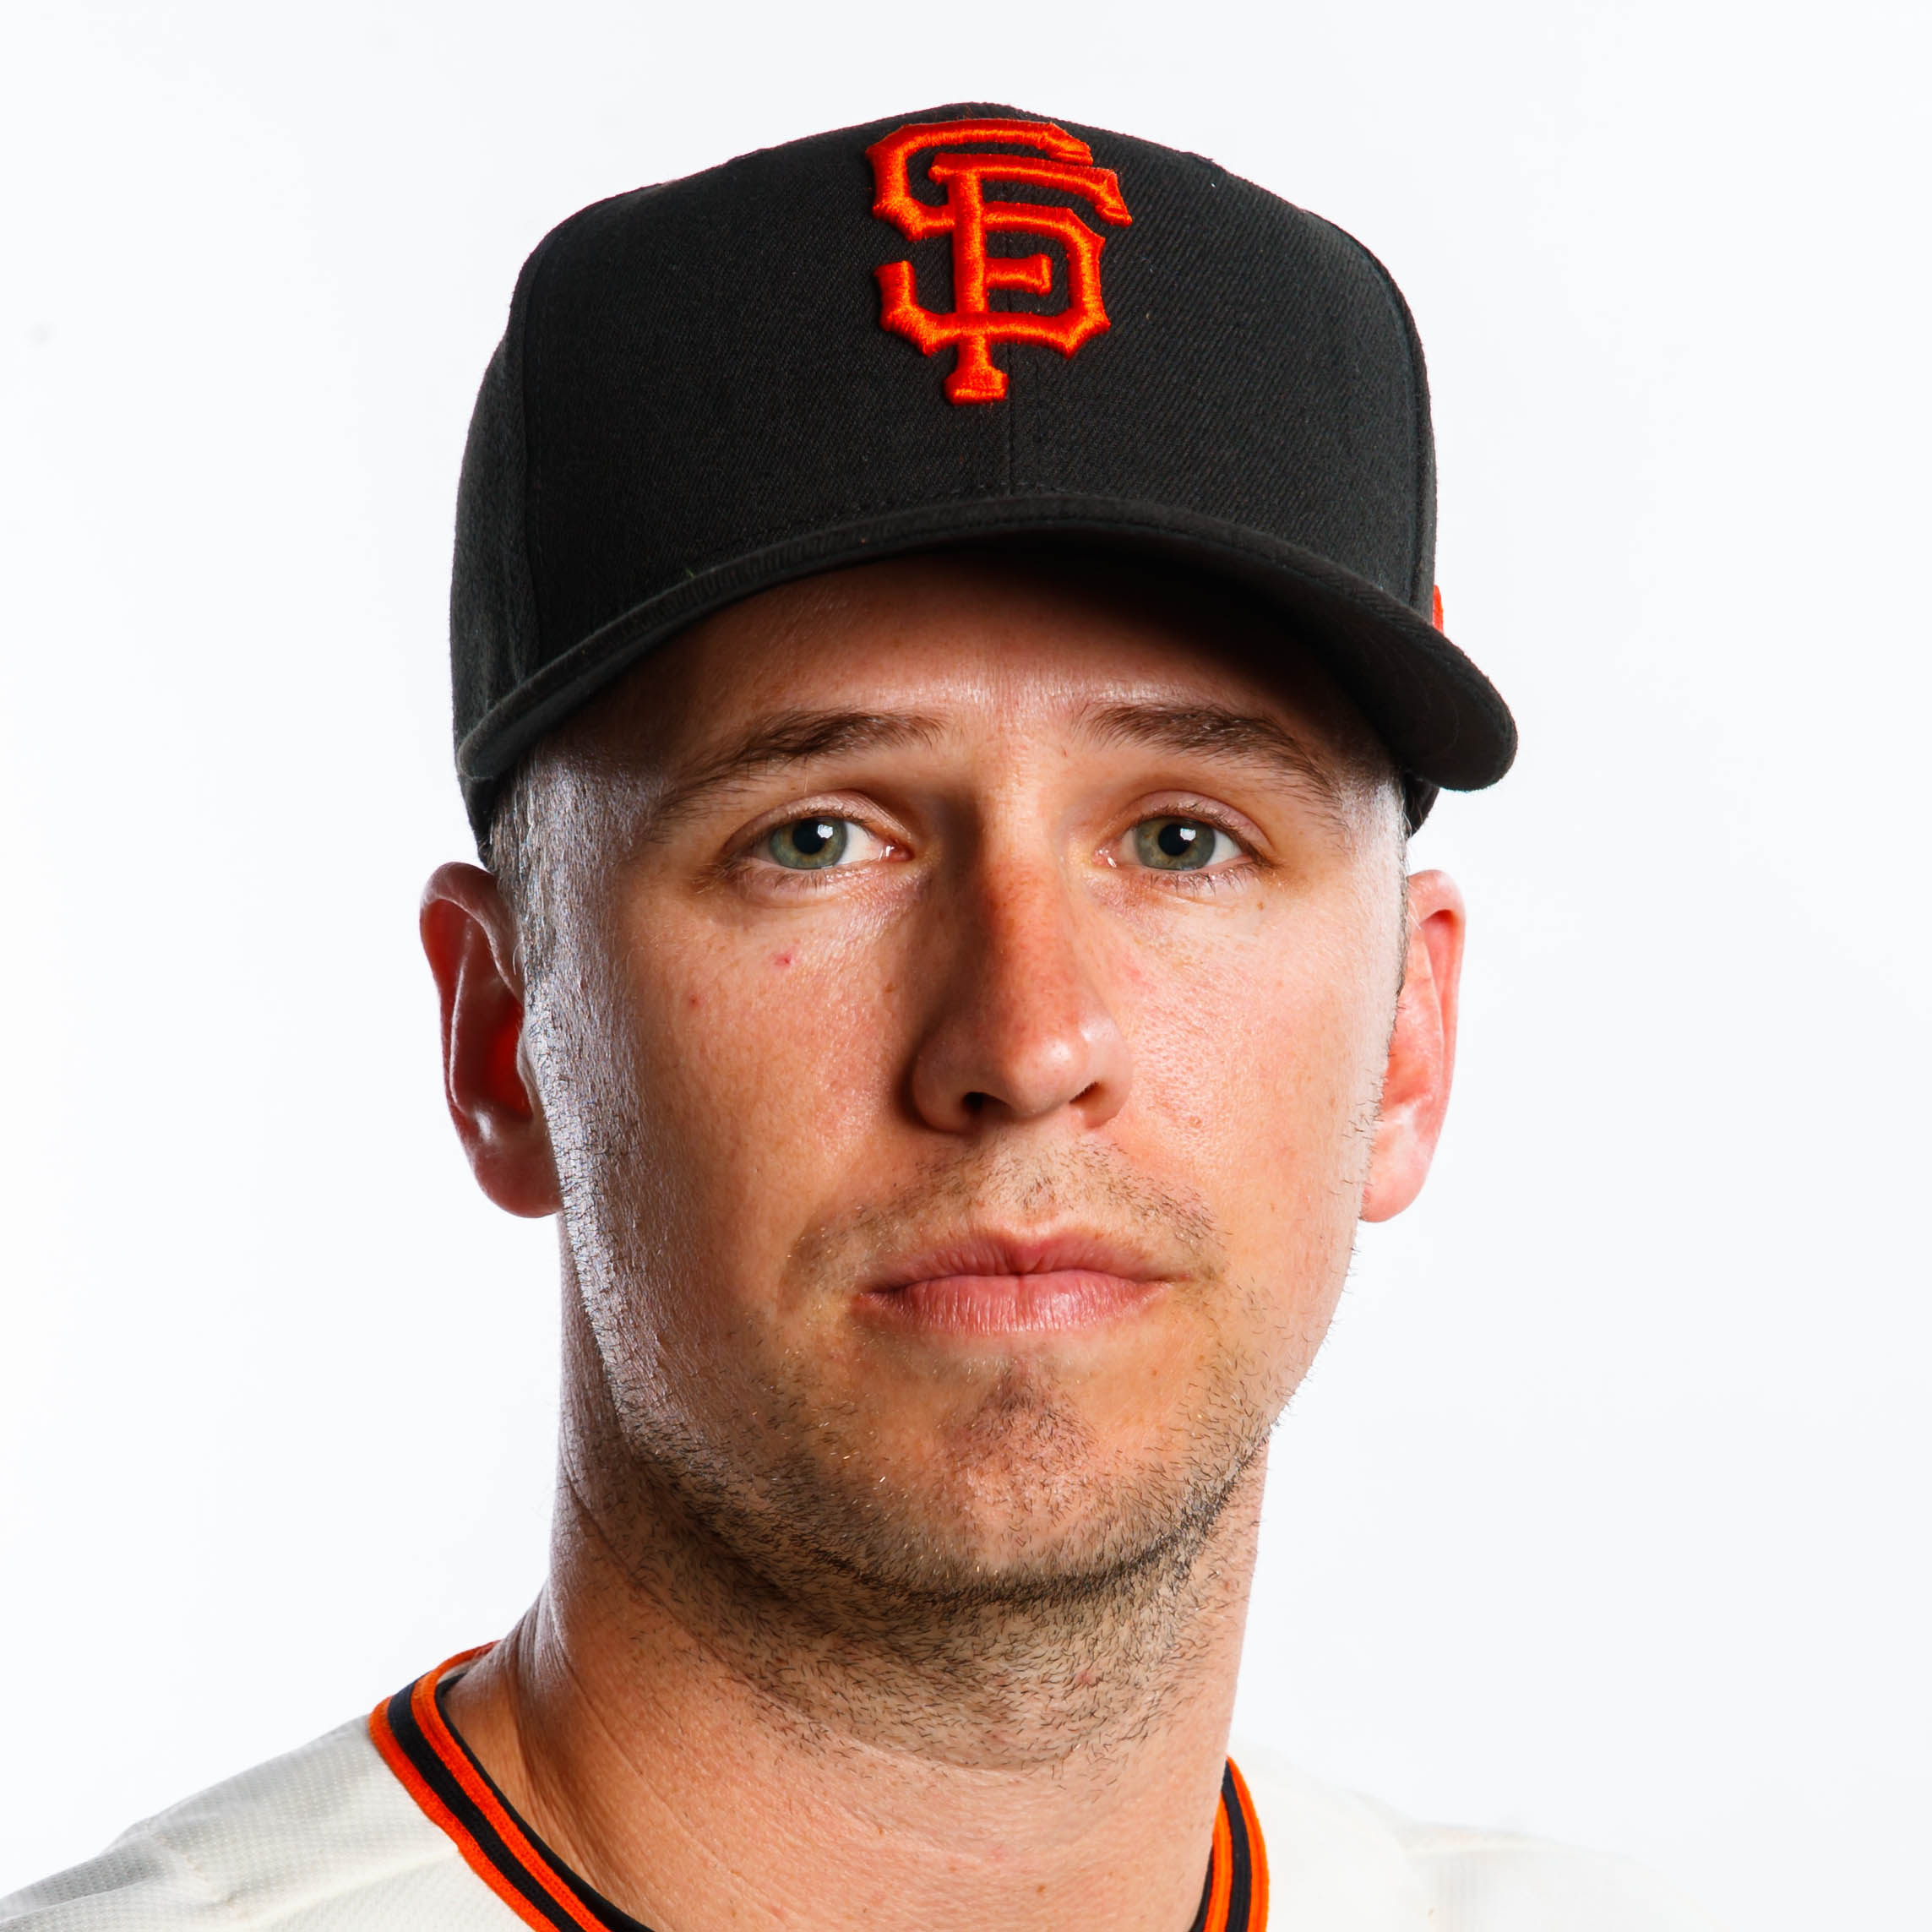 Buster Posey (R) Headshot